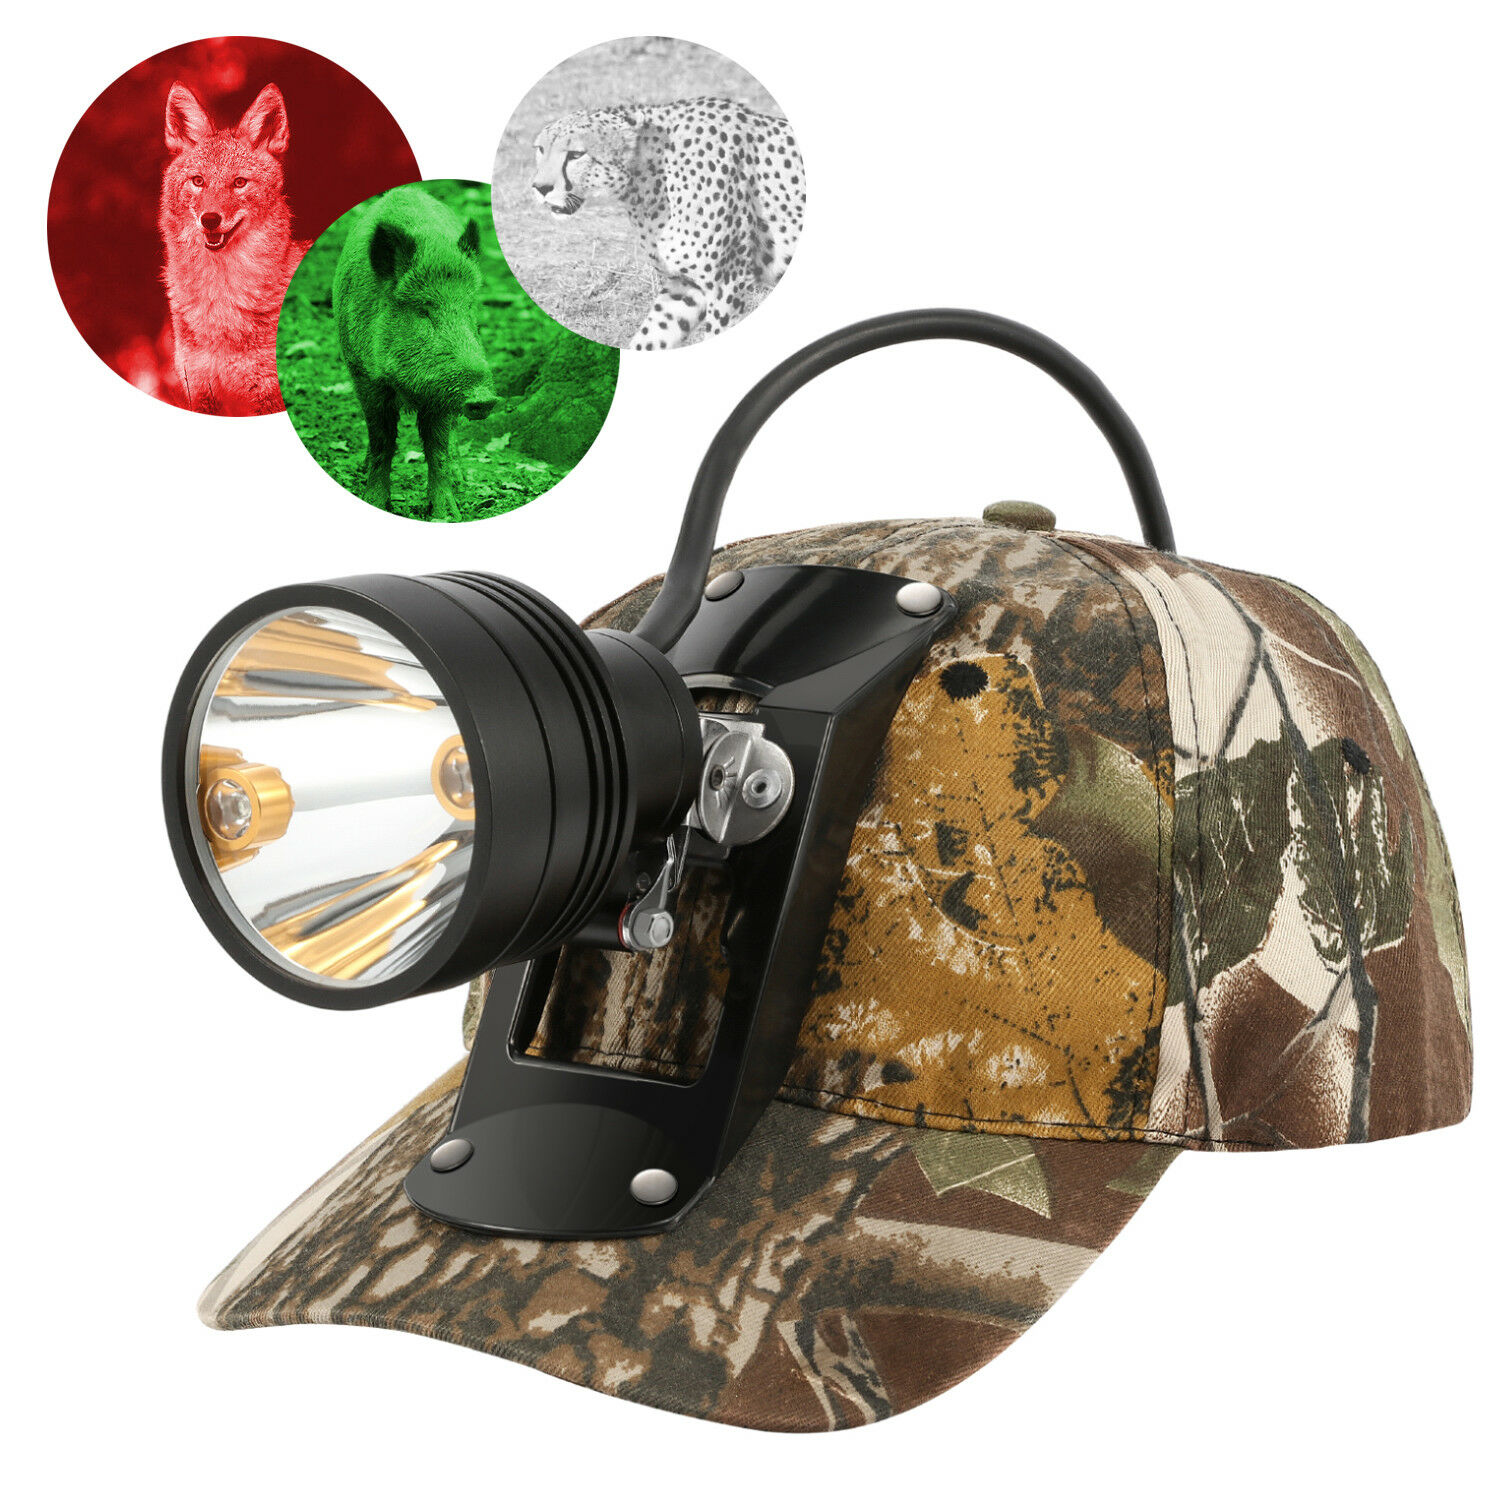 Rechargeable CREE 80000 LUX  LED Coyote Hog Coon Hunting Light & 3 LED Cap Light  high quaity